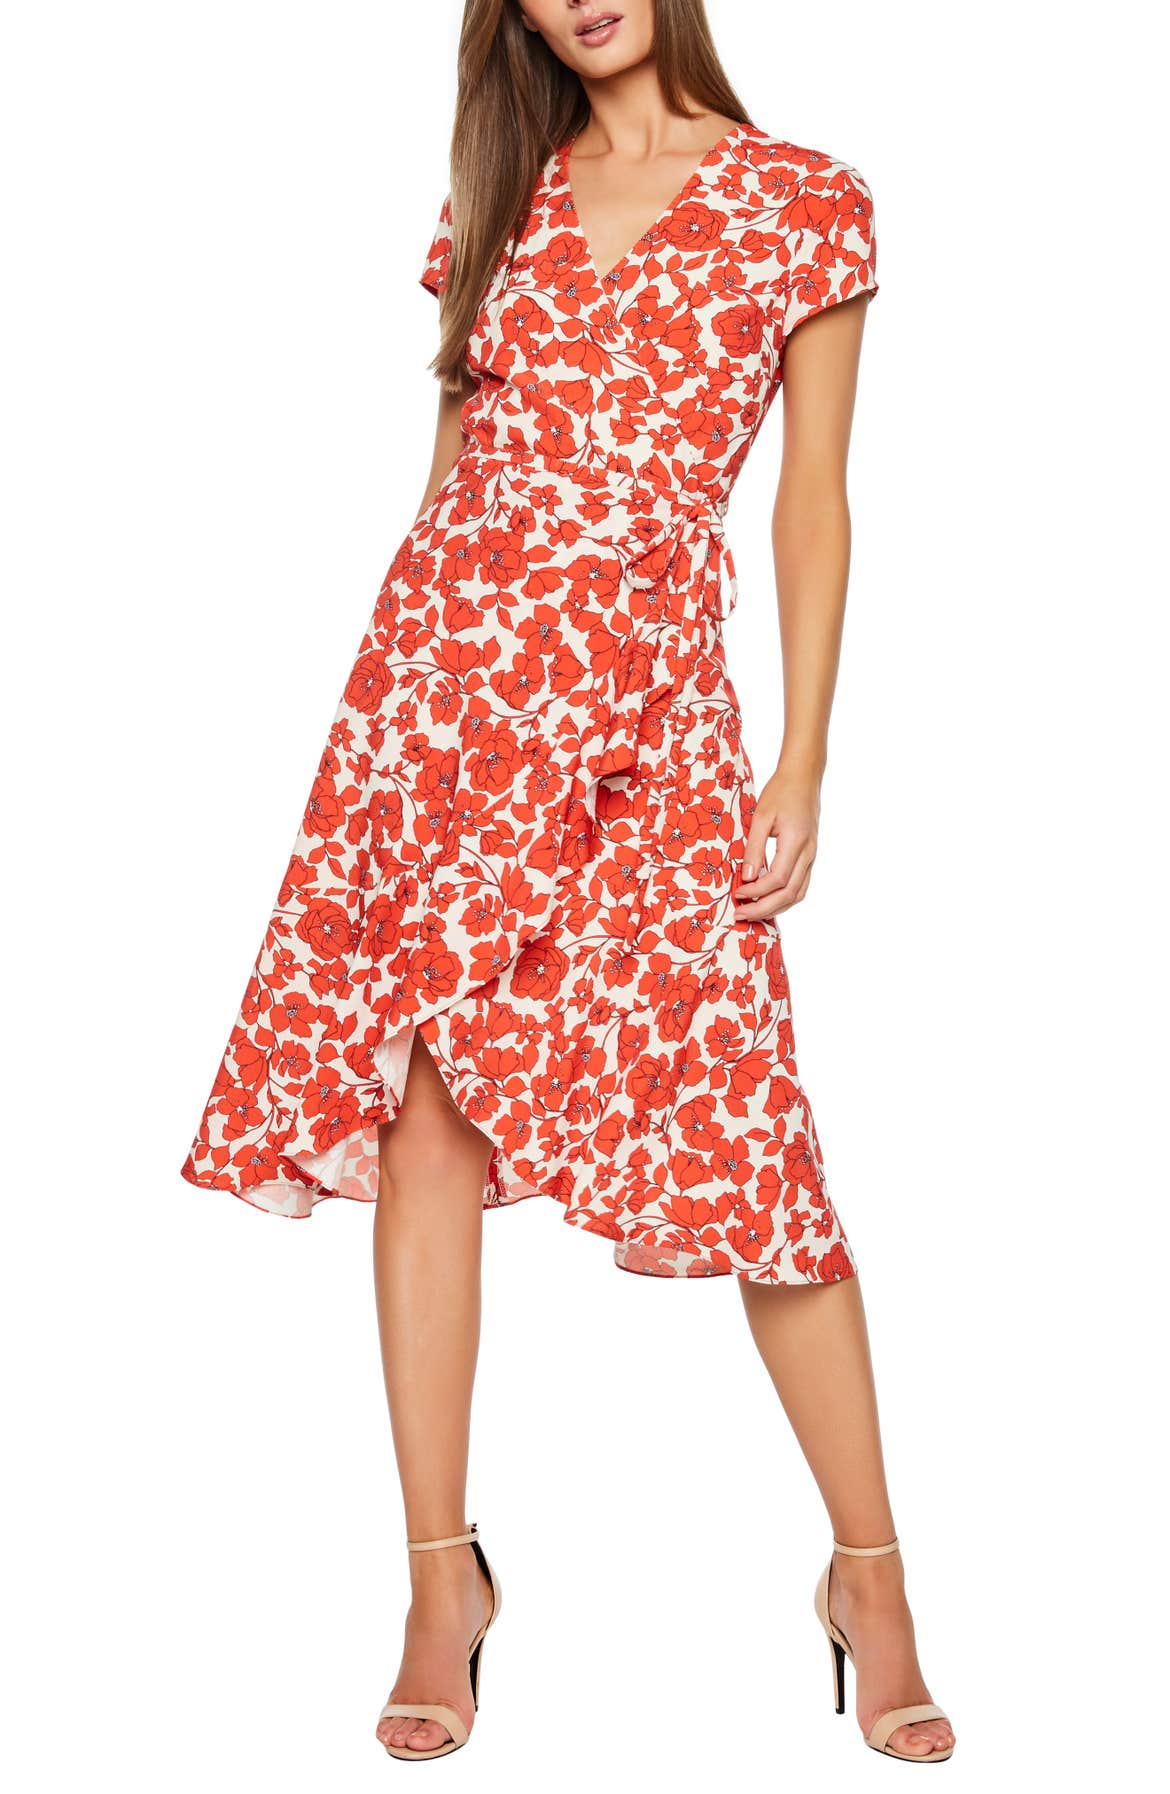 BARDOT Fiesta Floral Midi Dress, Main, color, ORANGE FLORAL